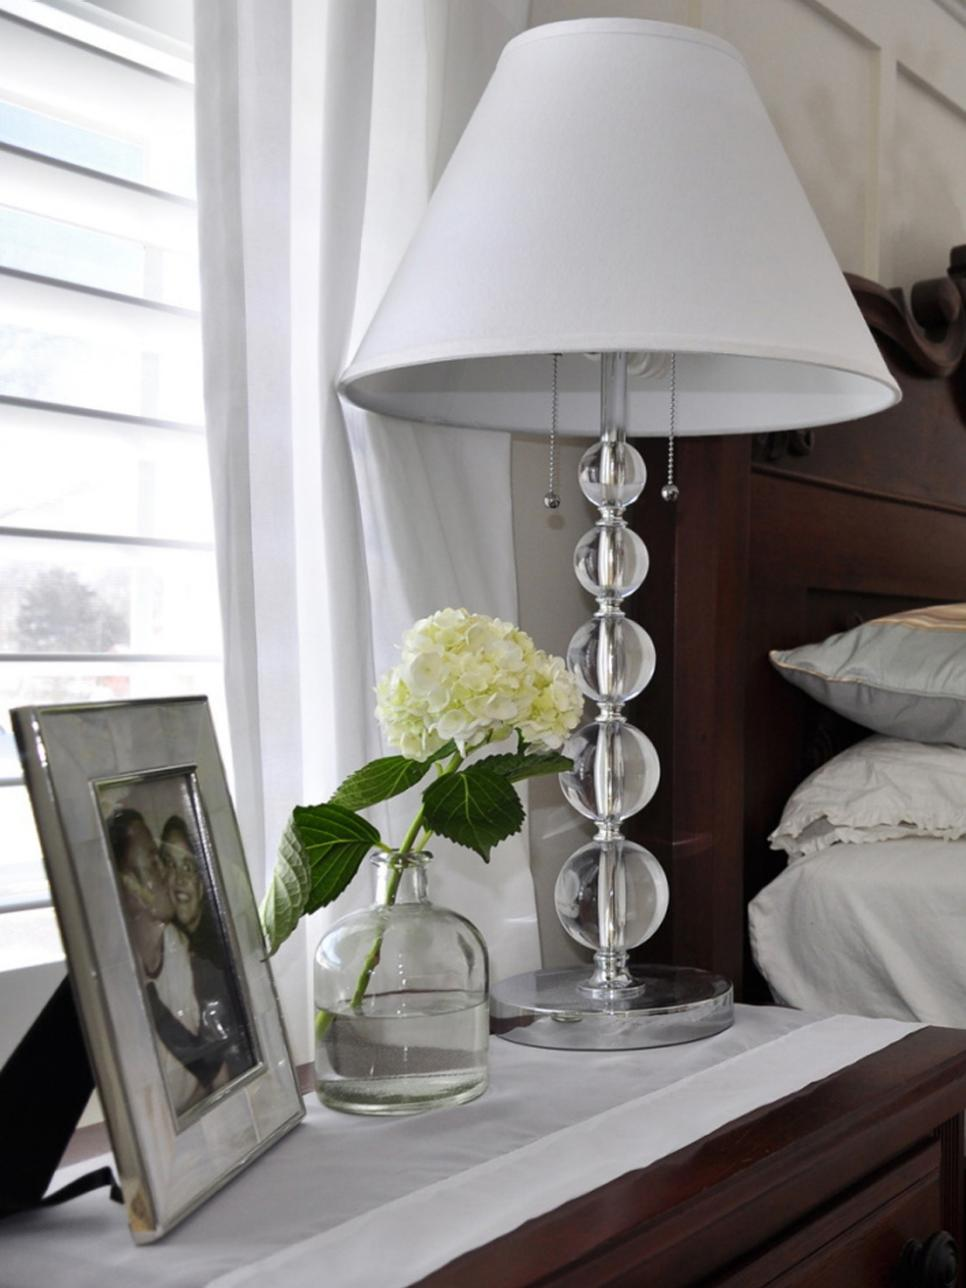 New side table lamps for bedroom 6 gorgeous bedside lamps   hgtv wpzrcch